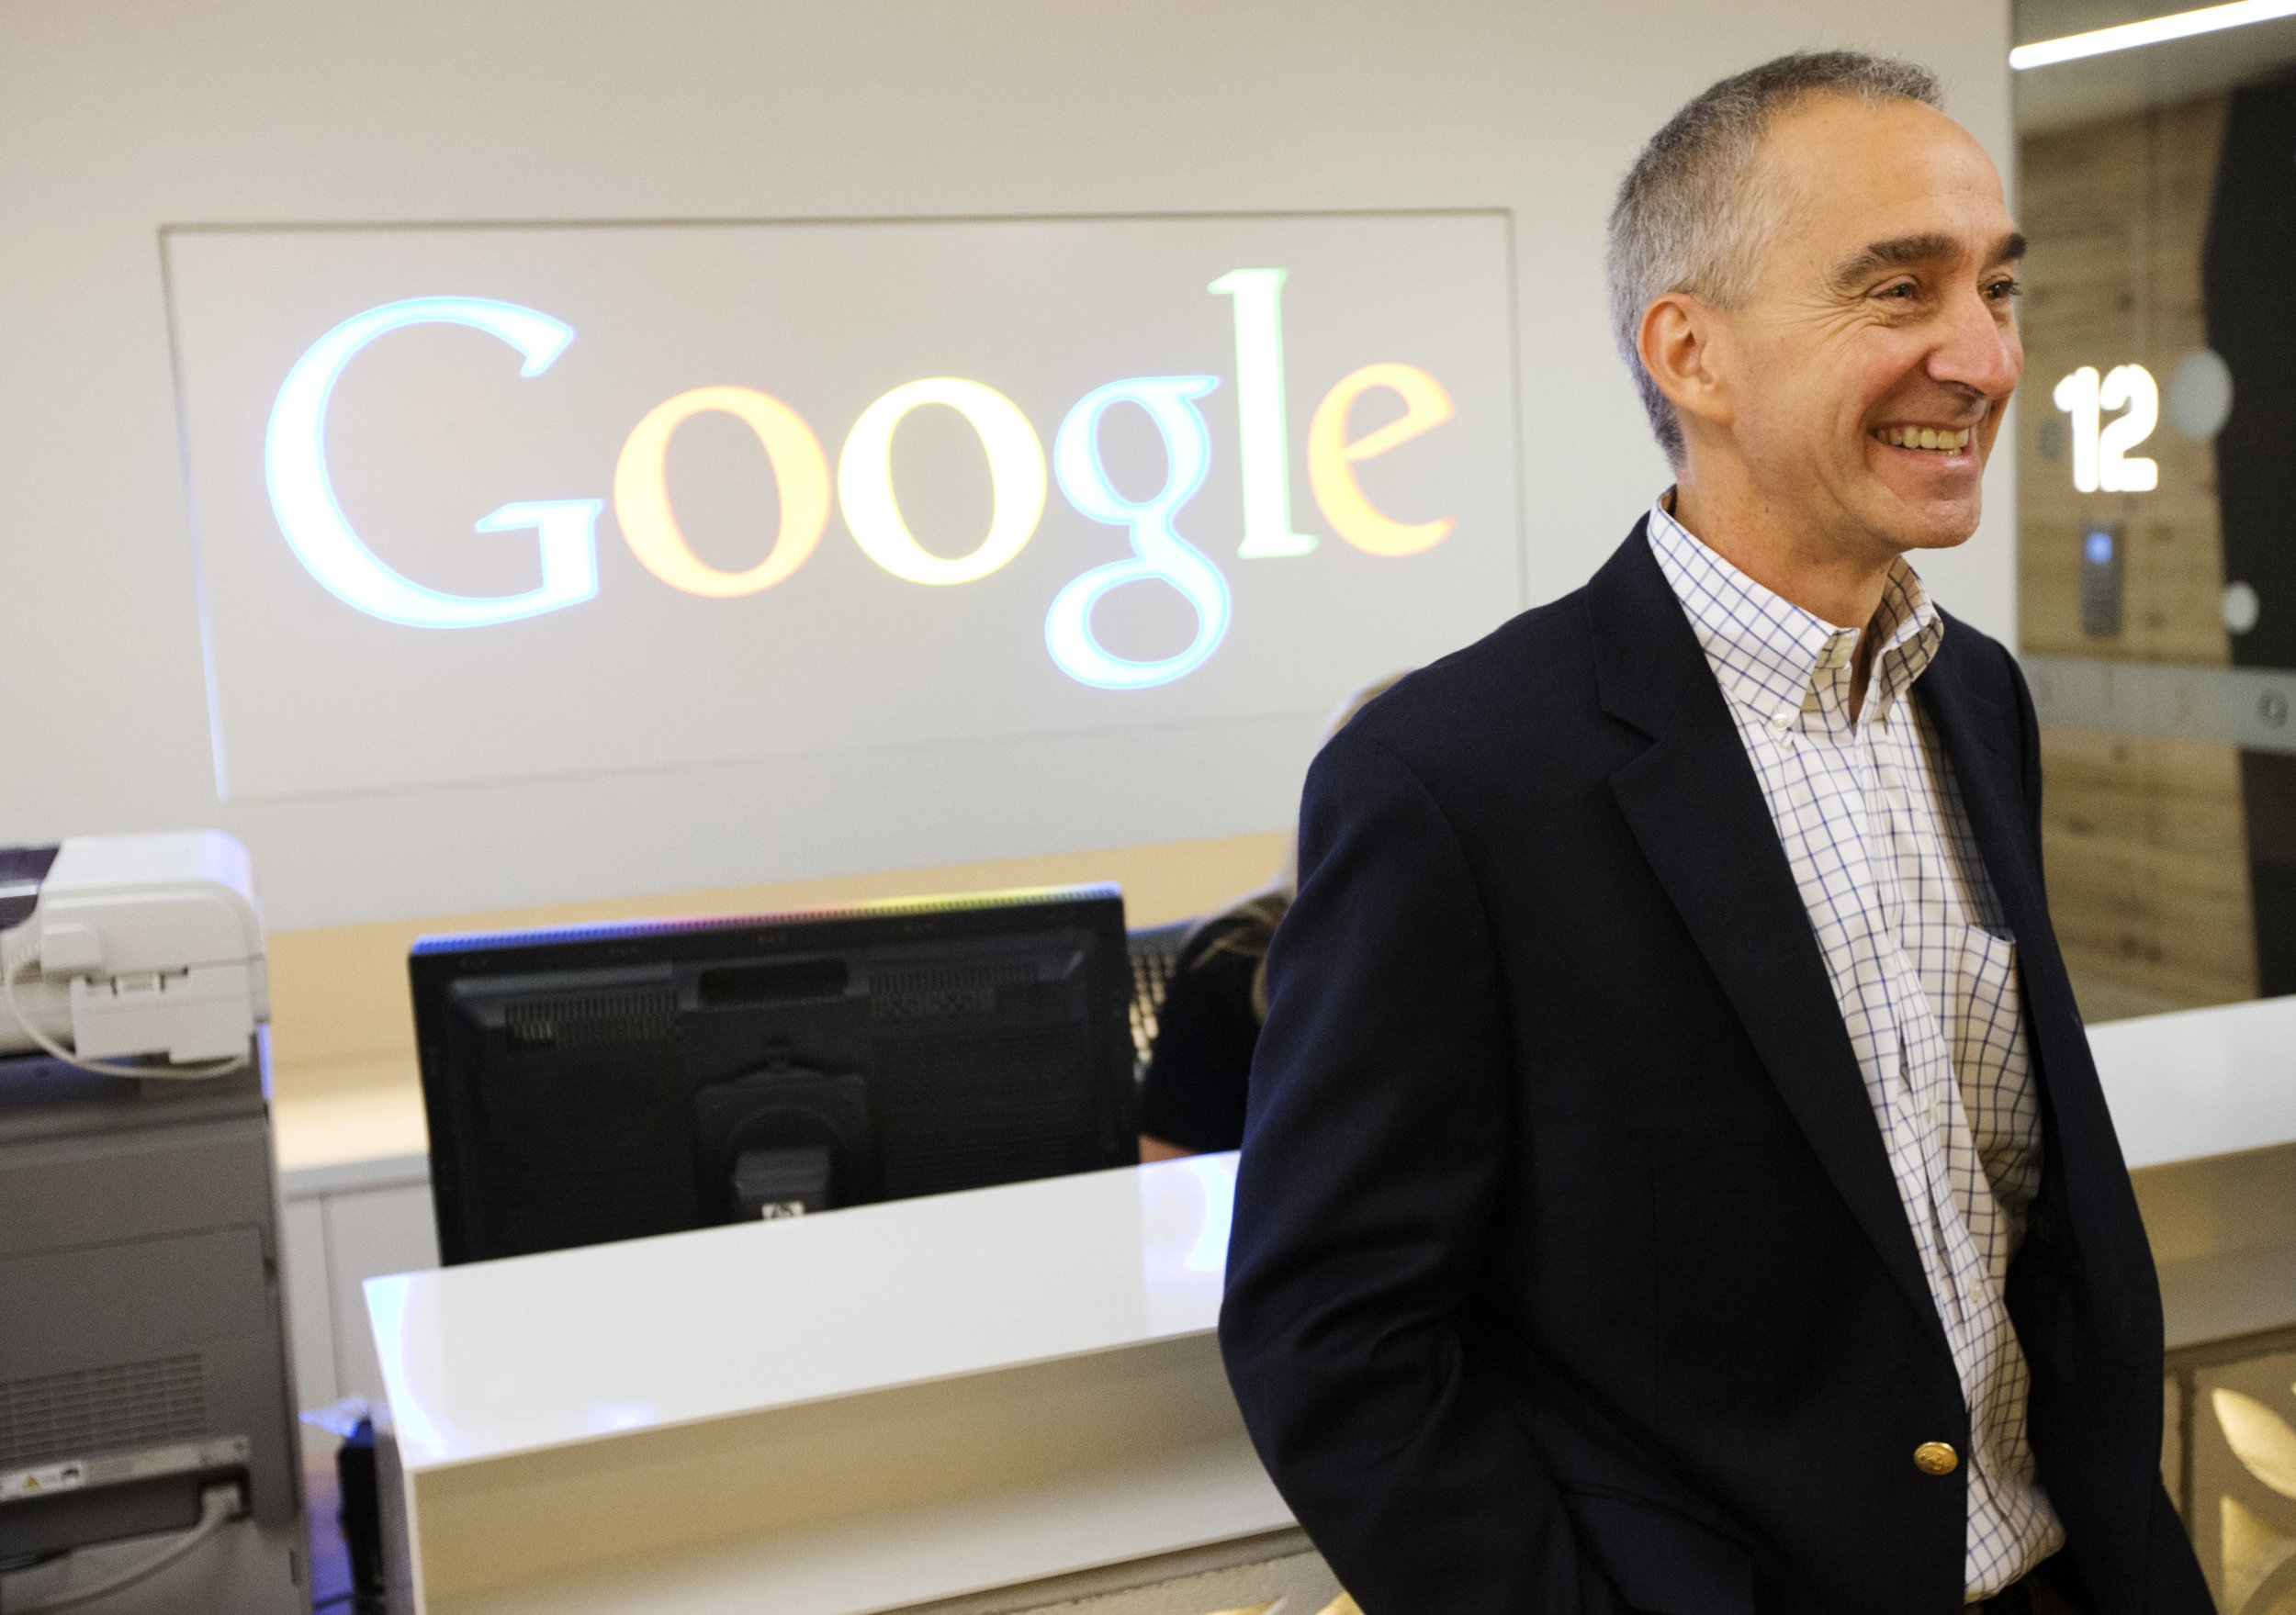 google cfo s search for balance ends with resignation clichÃ